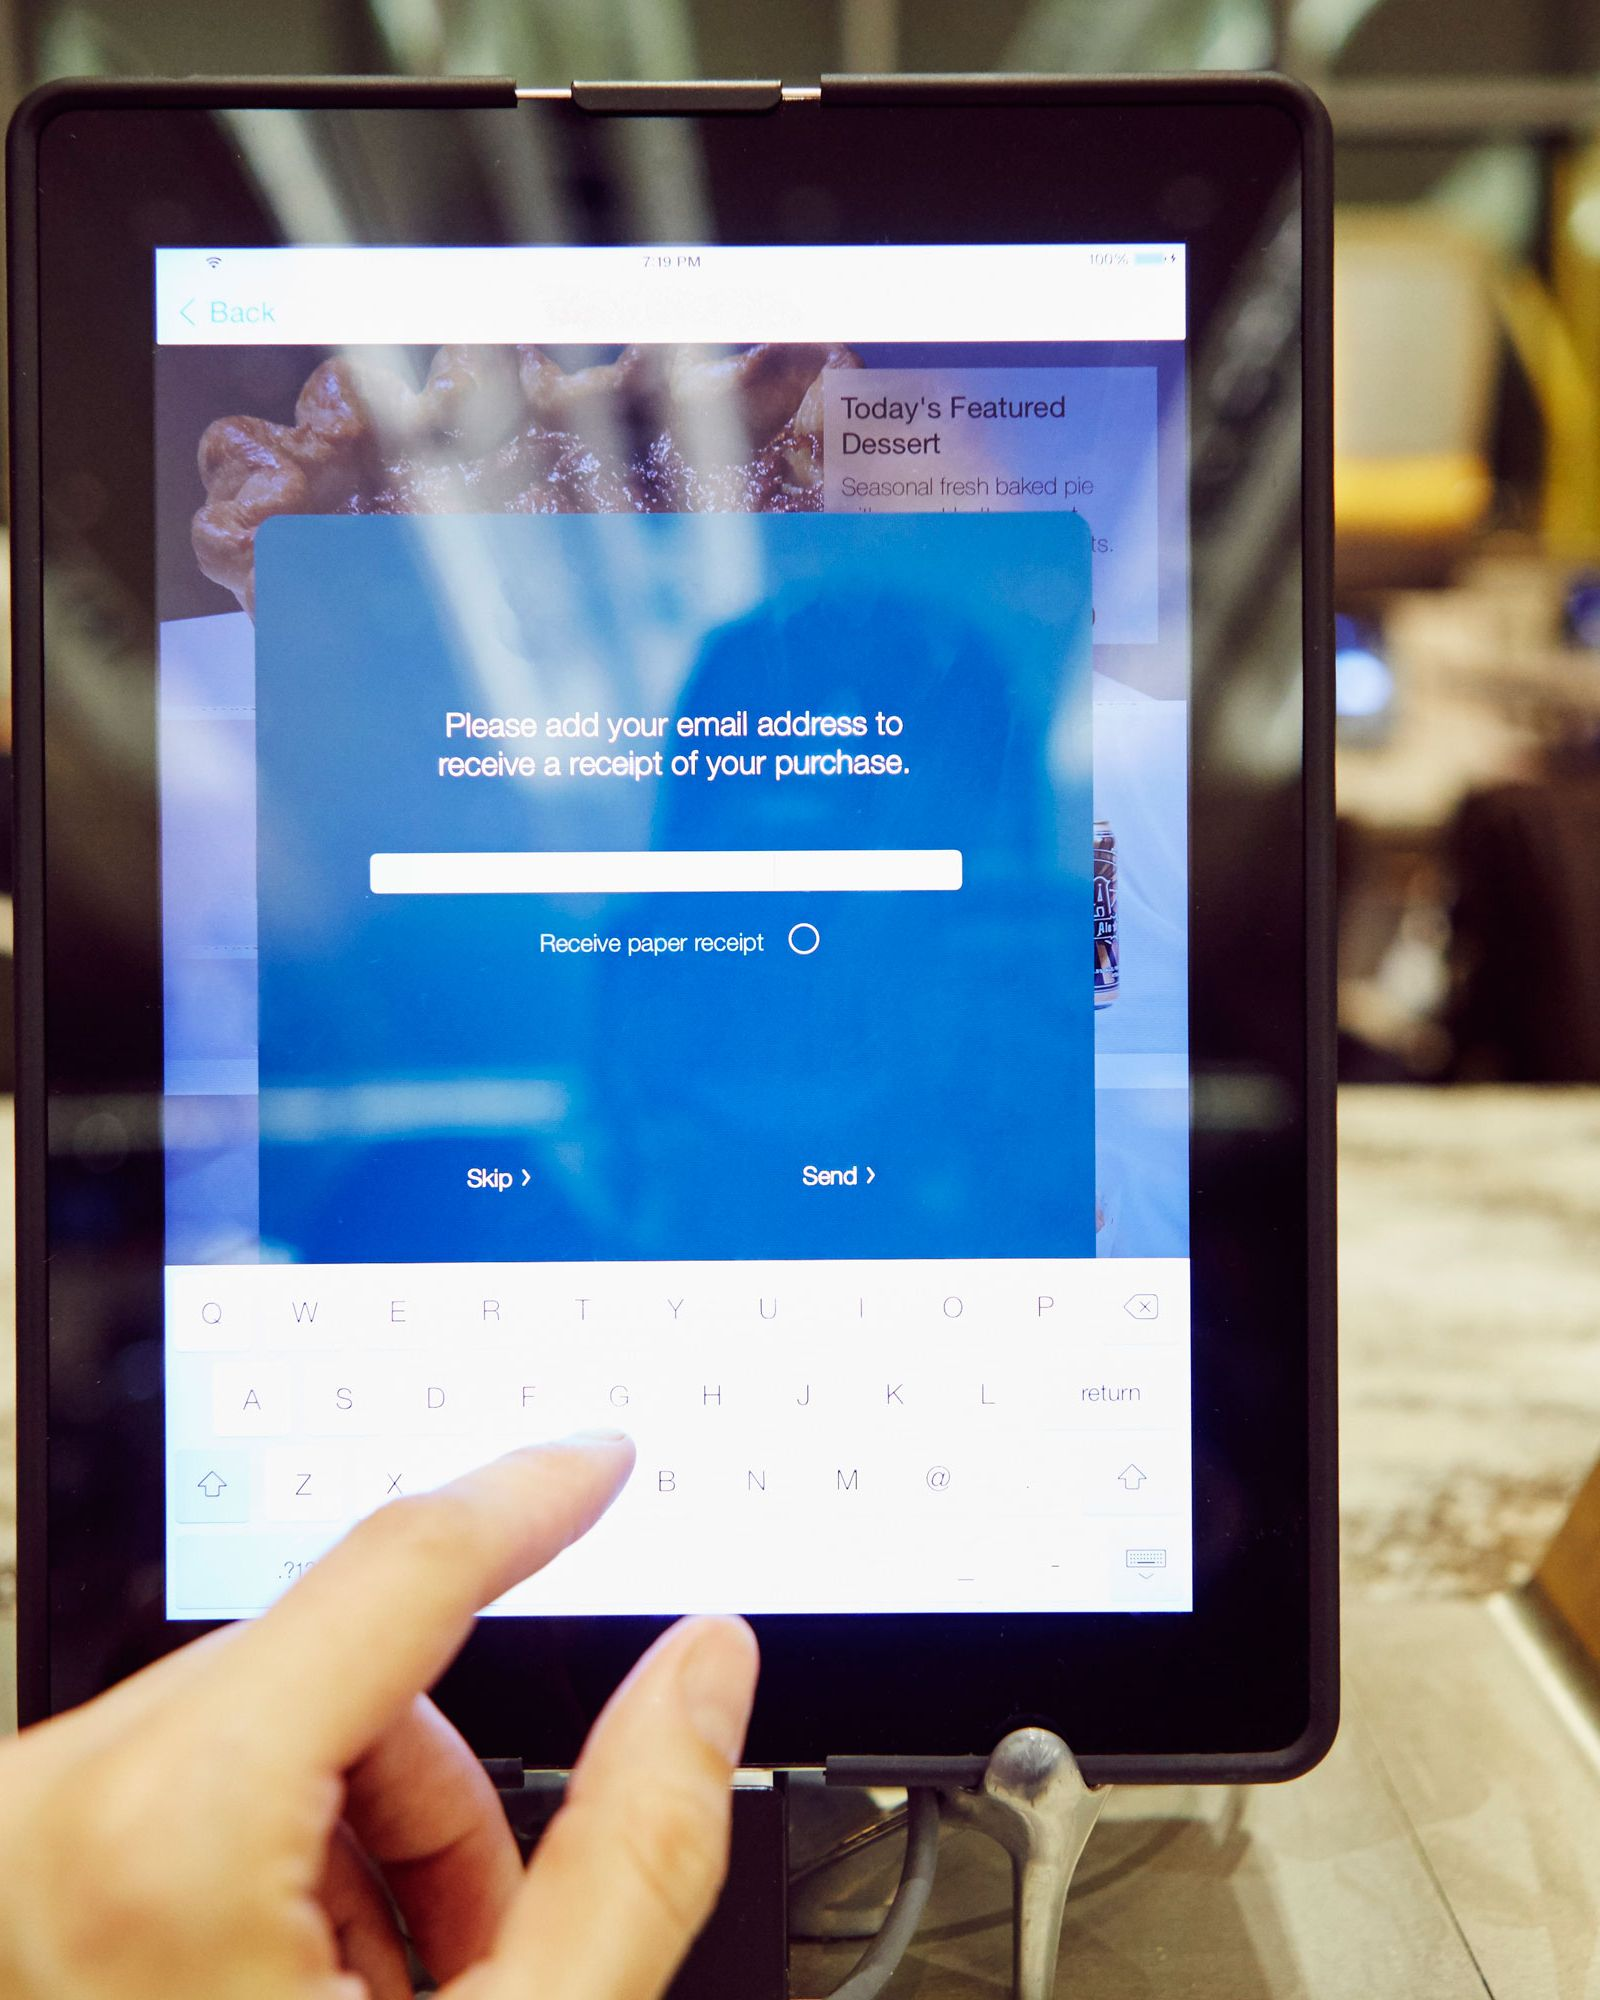 Restaurant Tablets Are Causing Headaches for Servers